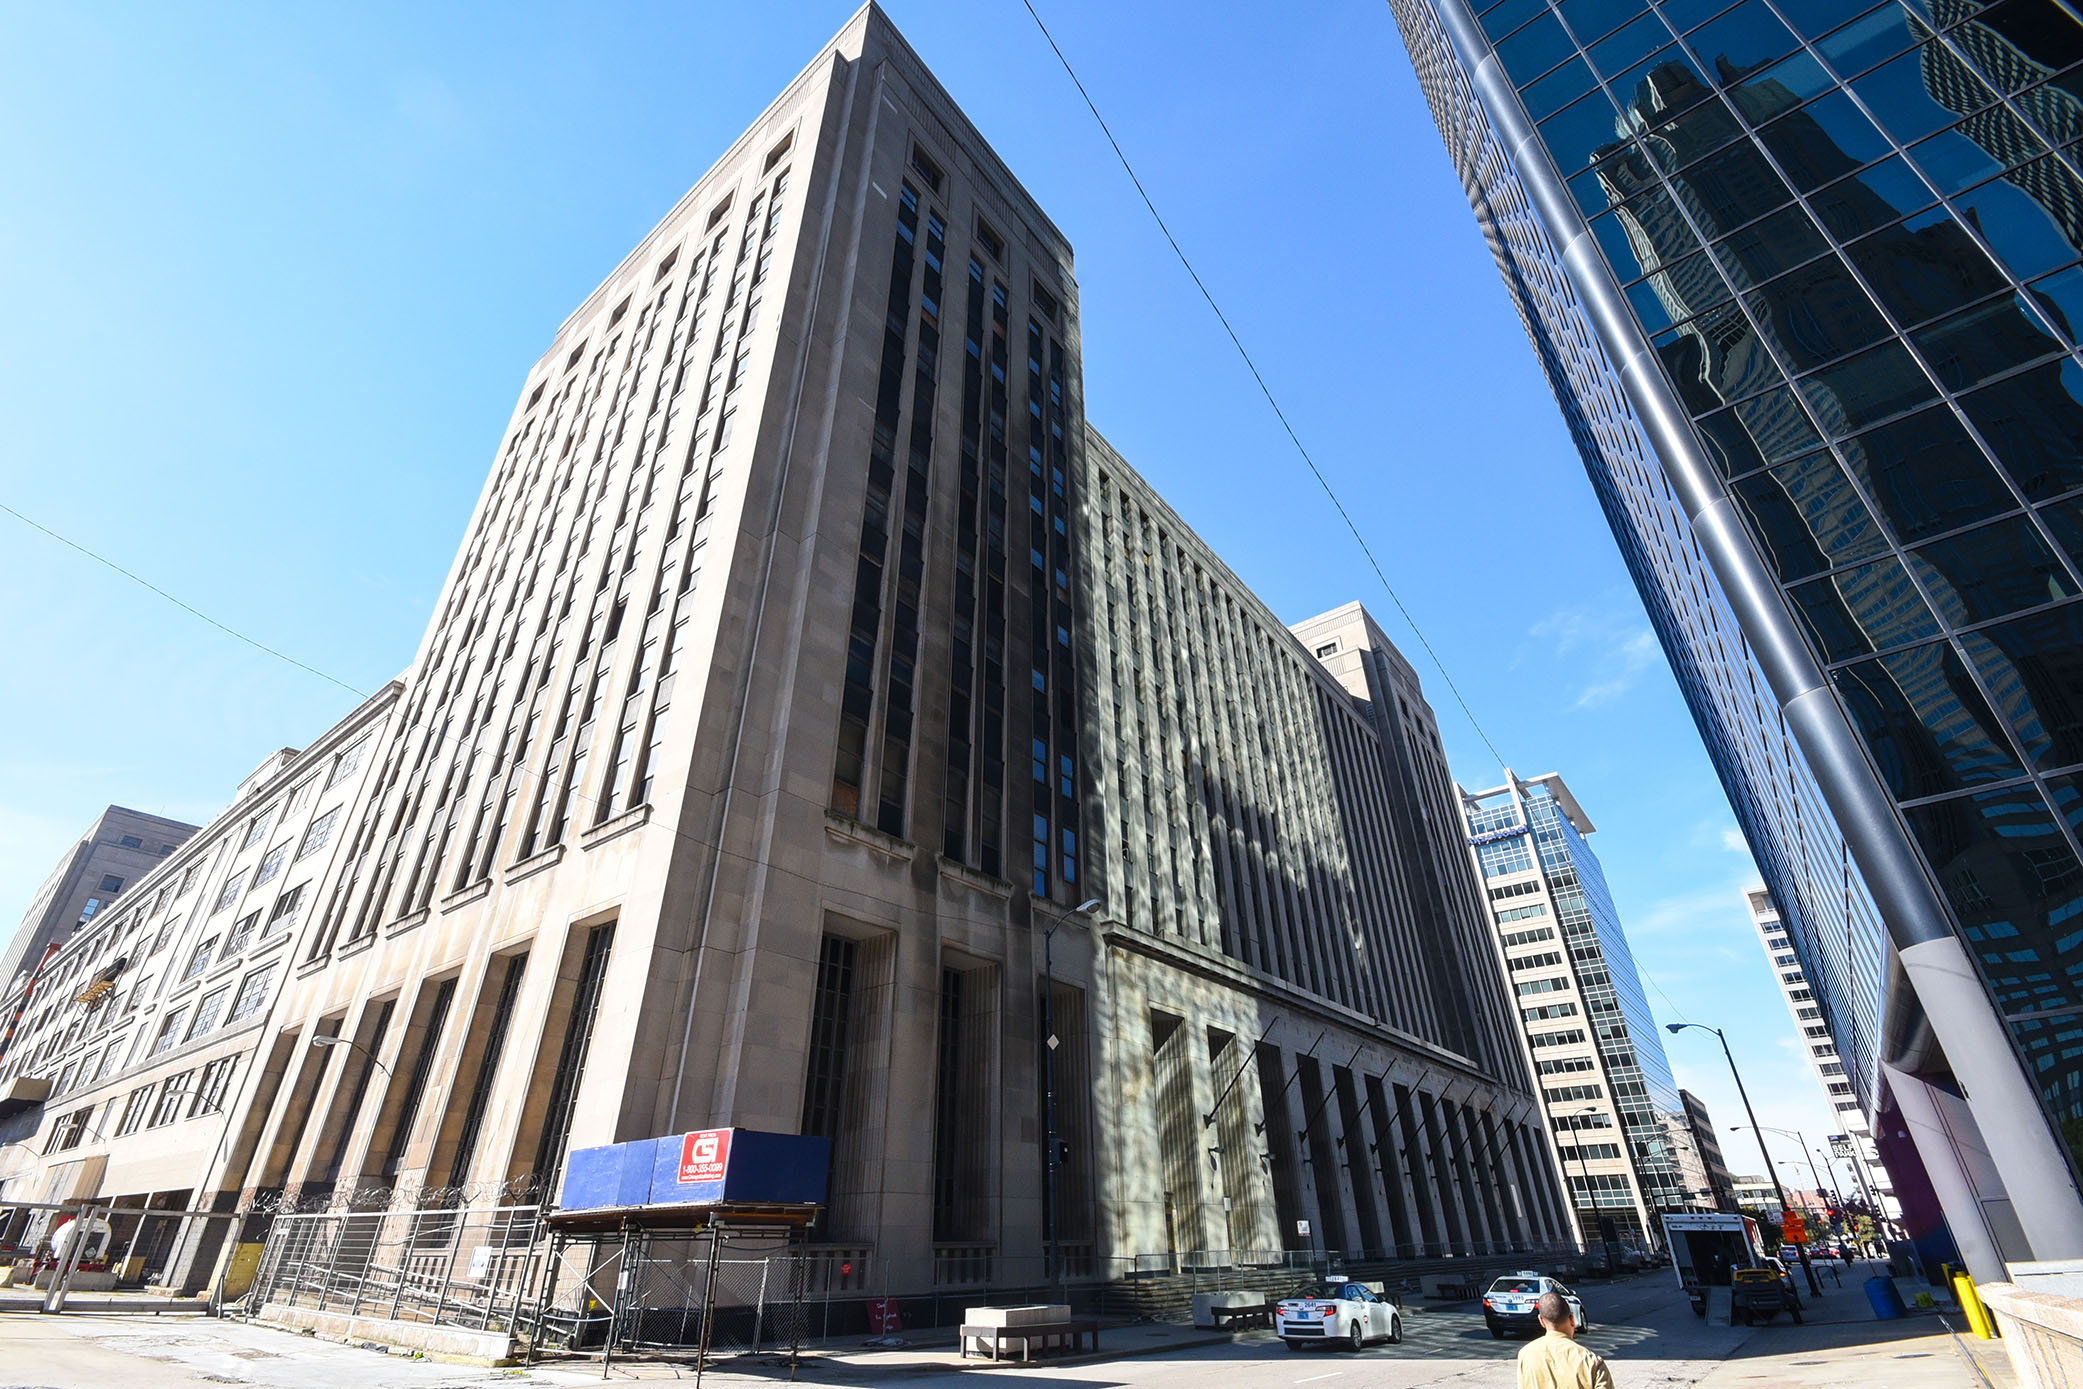 Walgreens to open Office in Chicago's Old Post Office Building